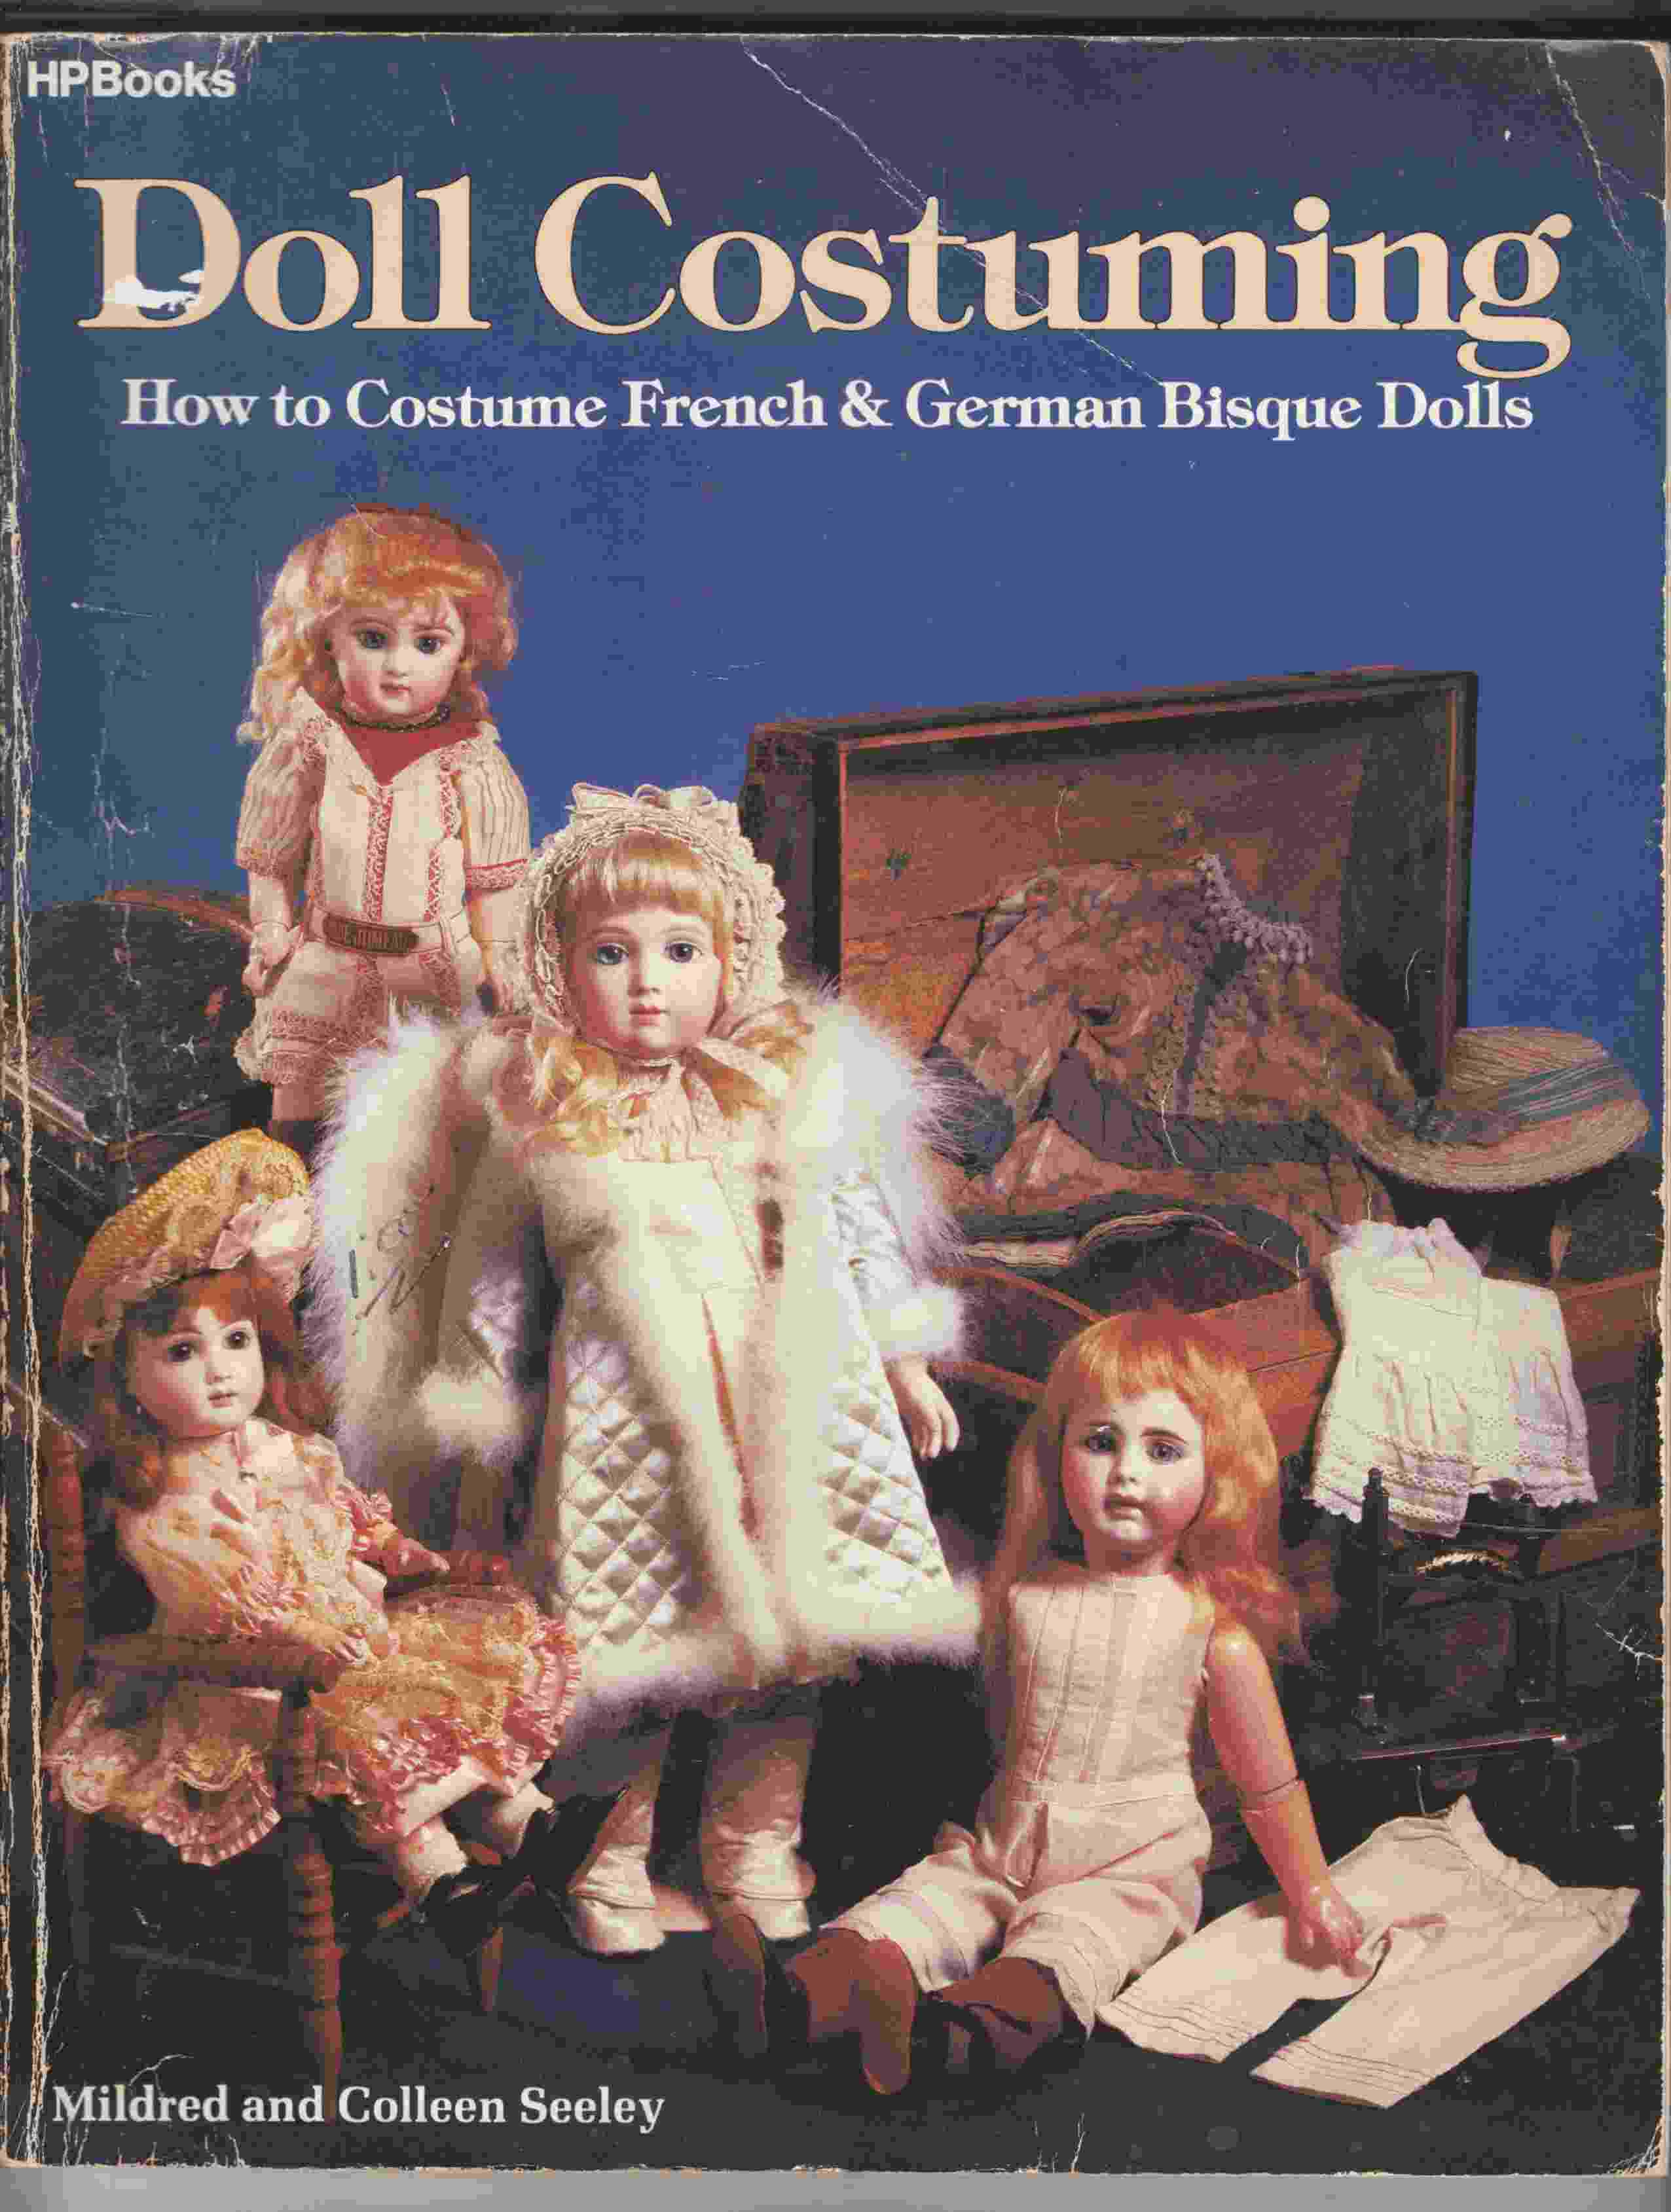 Image for Doll Costuming How to Costume French & German Bisque Dolls